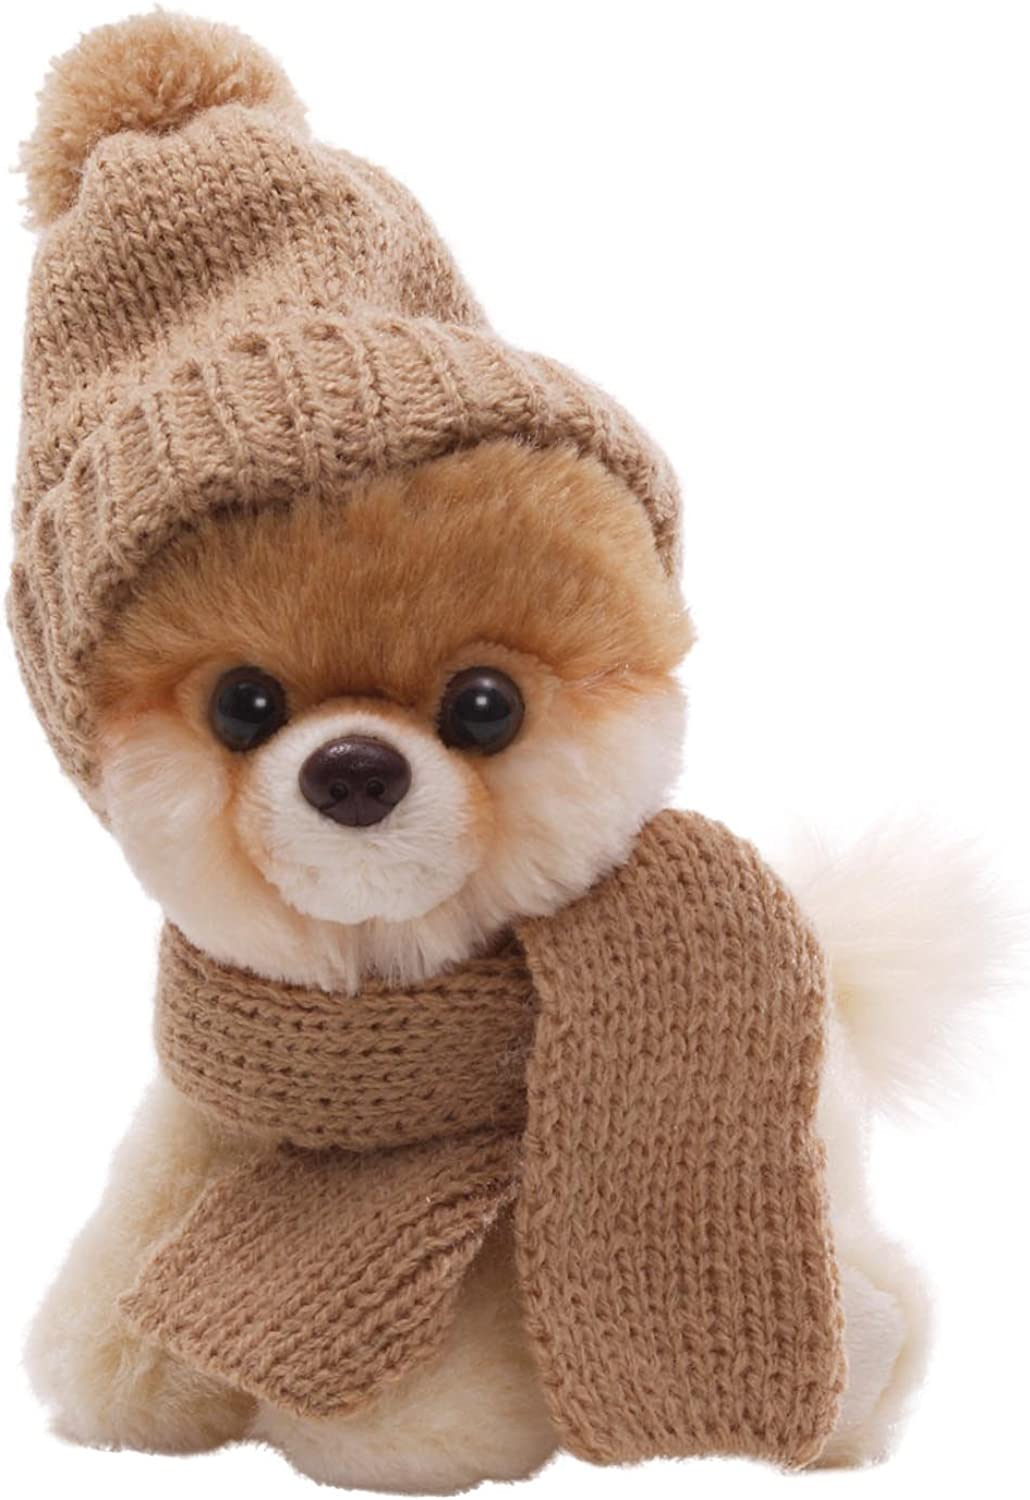 Gund 5  Itty Bitty Boo in Knit Scarf and Cap Plush